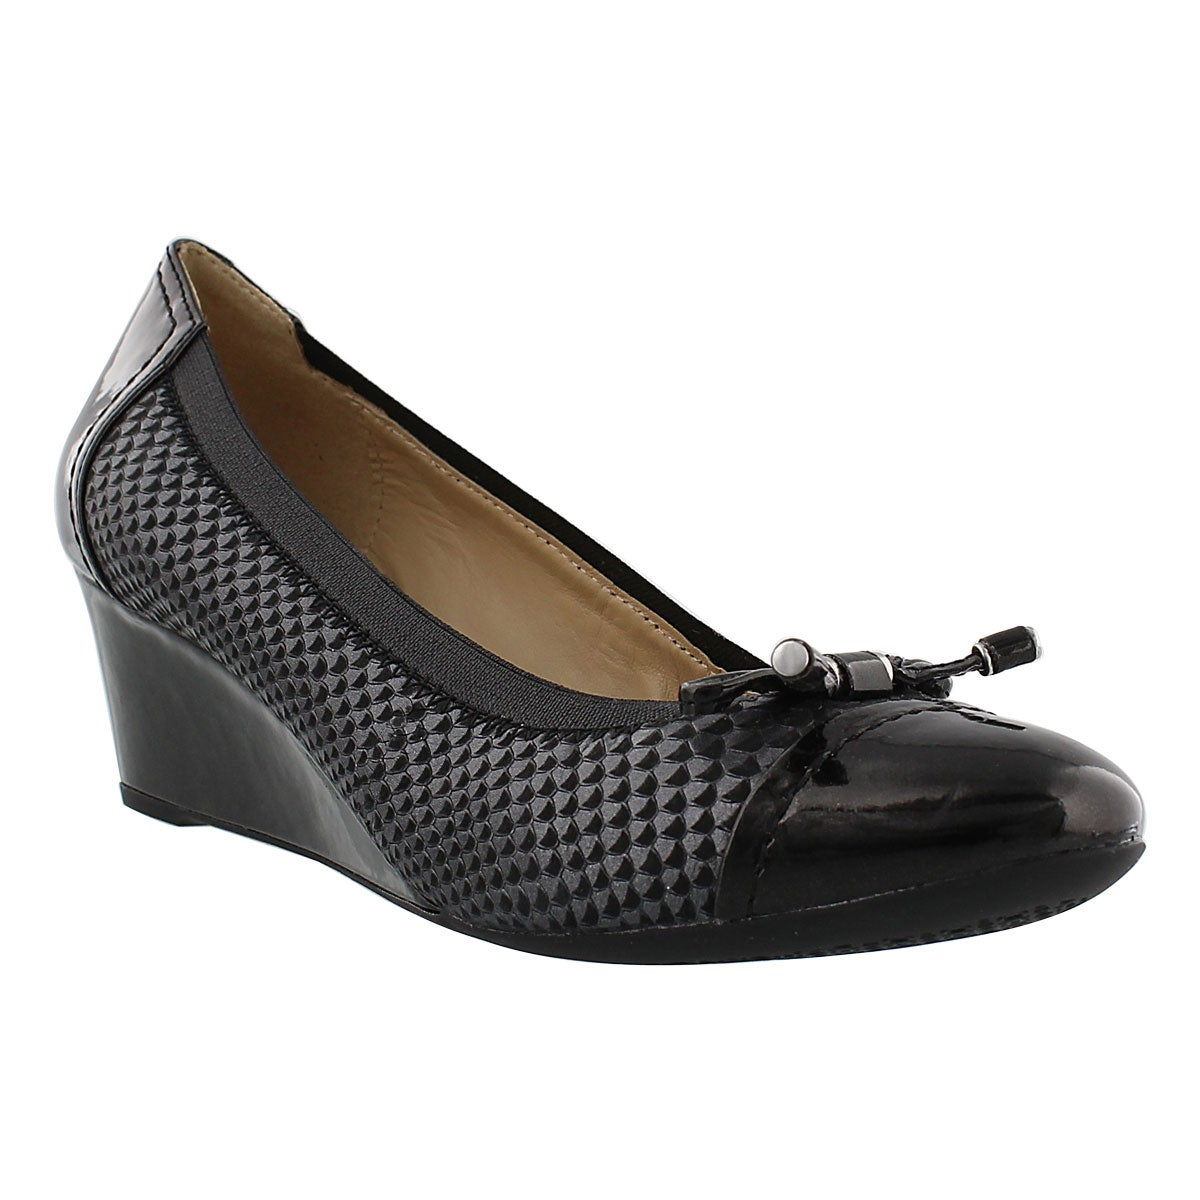 Lds Floralie black nubuck dress wedge